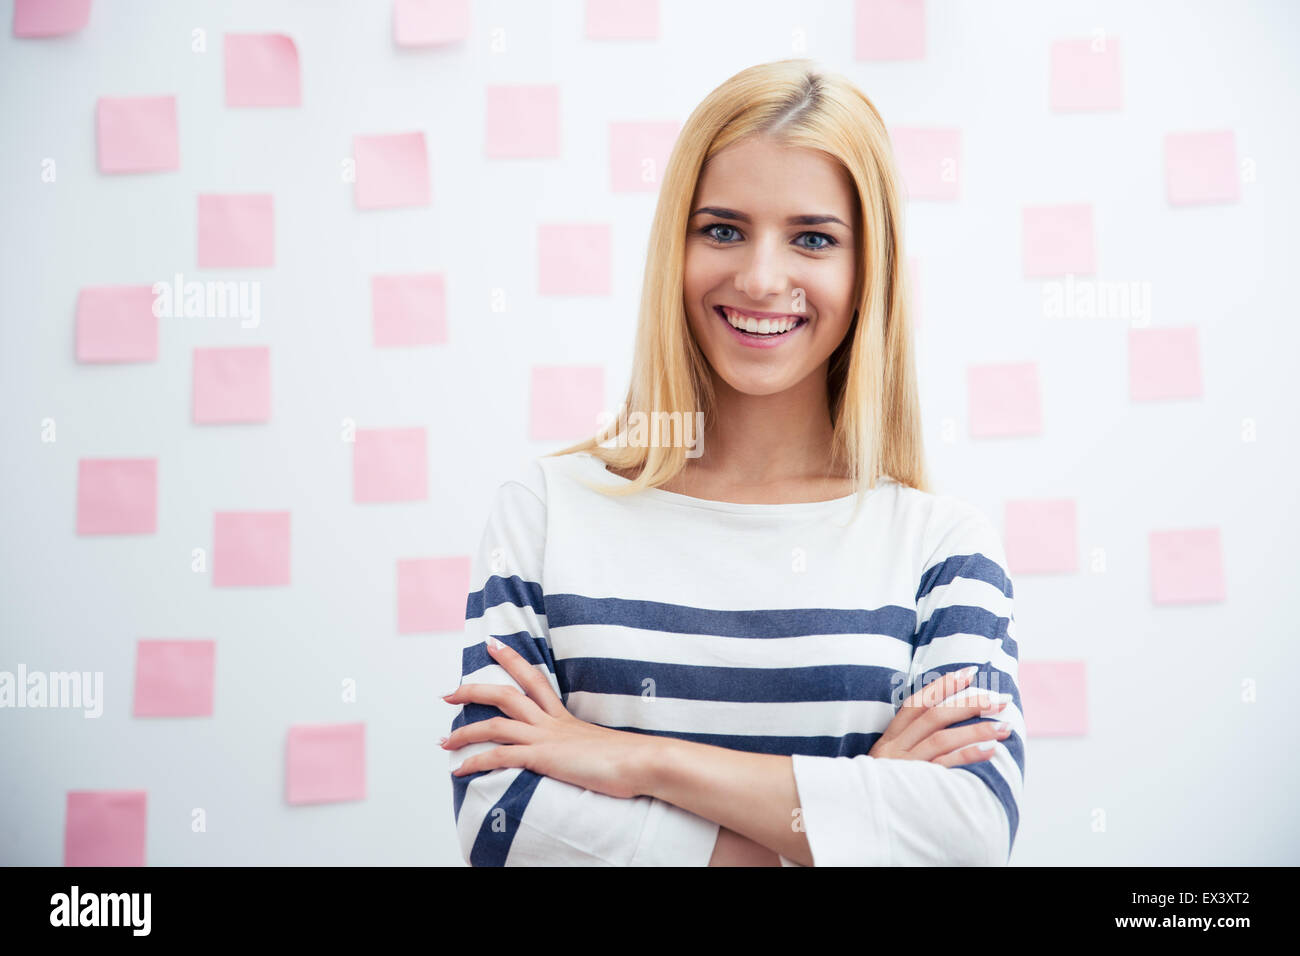 Smiling young casual girl standing with arms folded in office with stickers on background - Stock Image